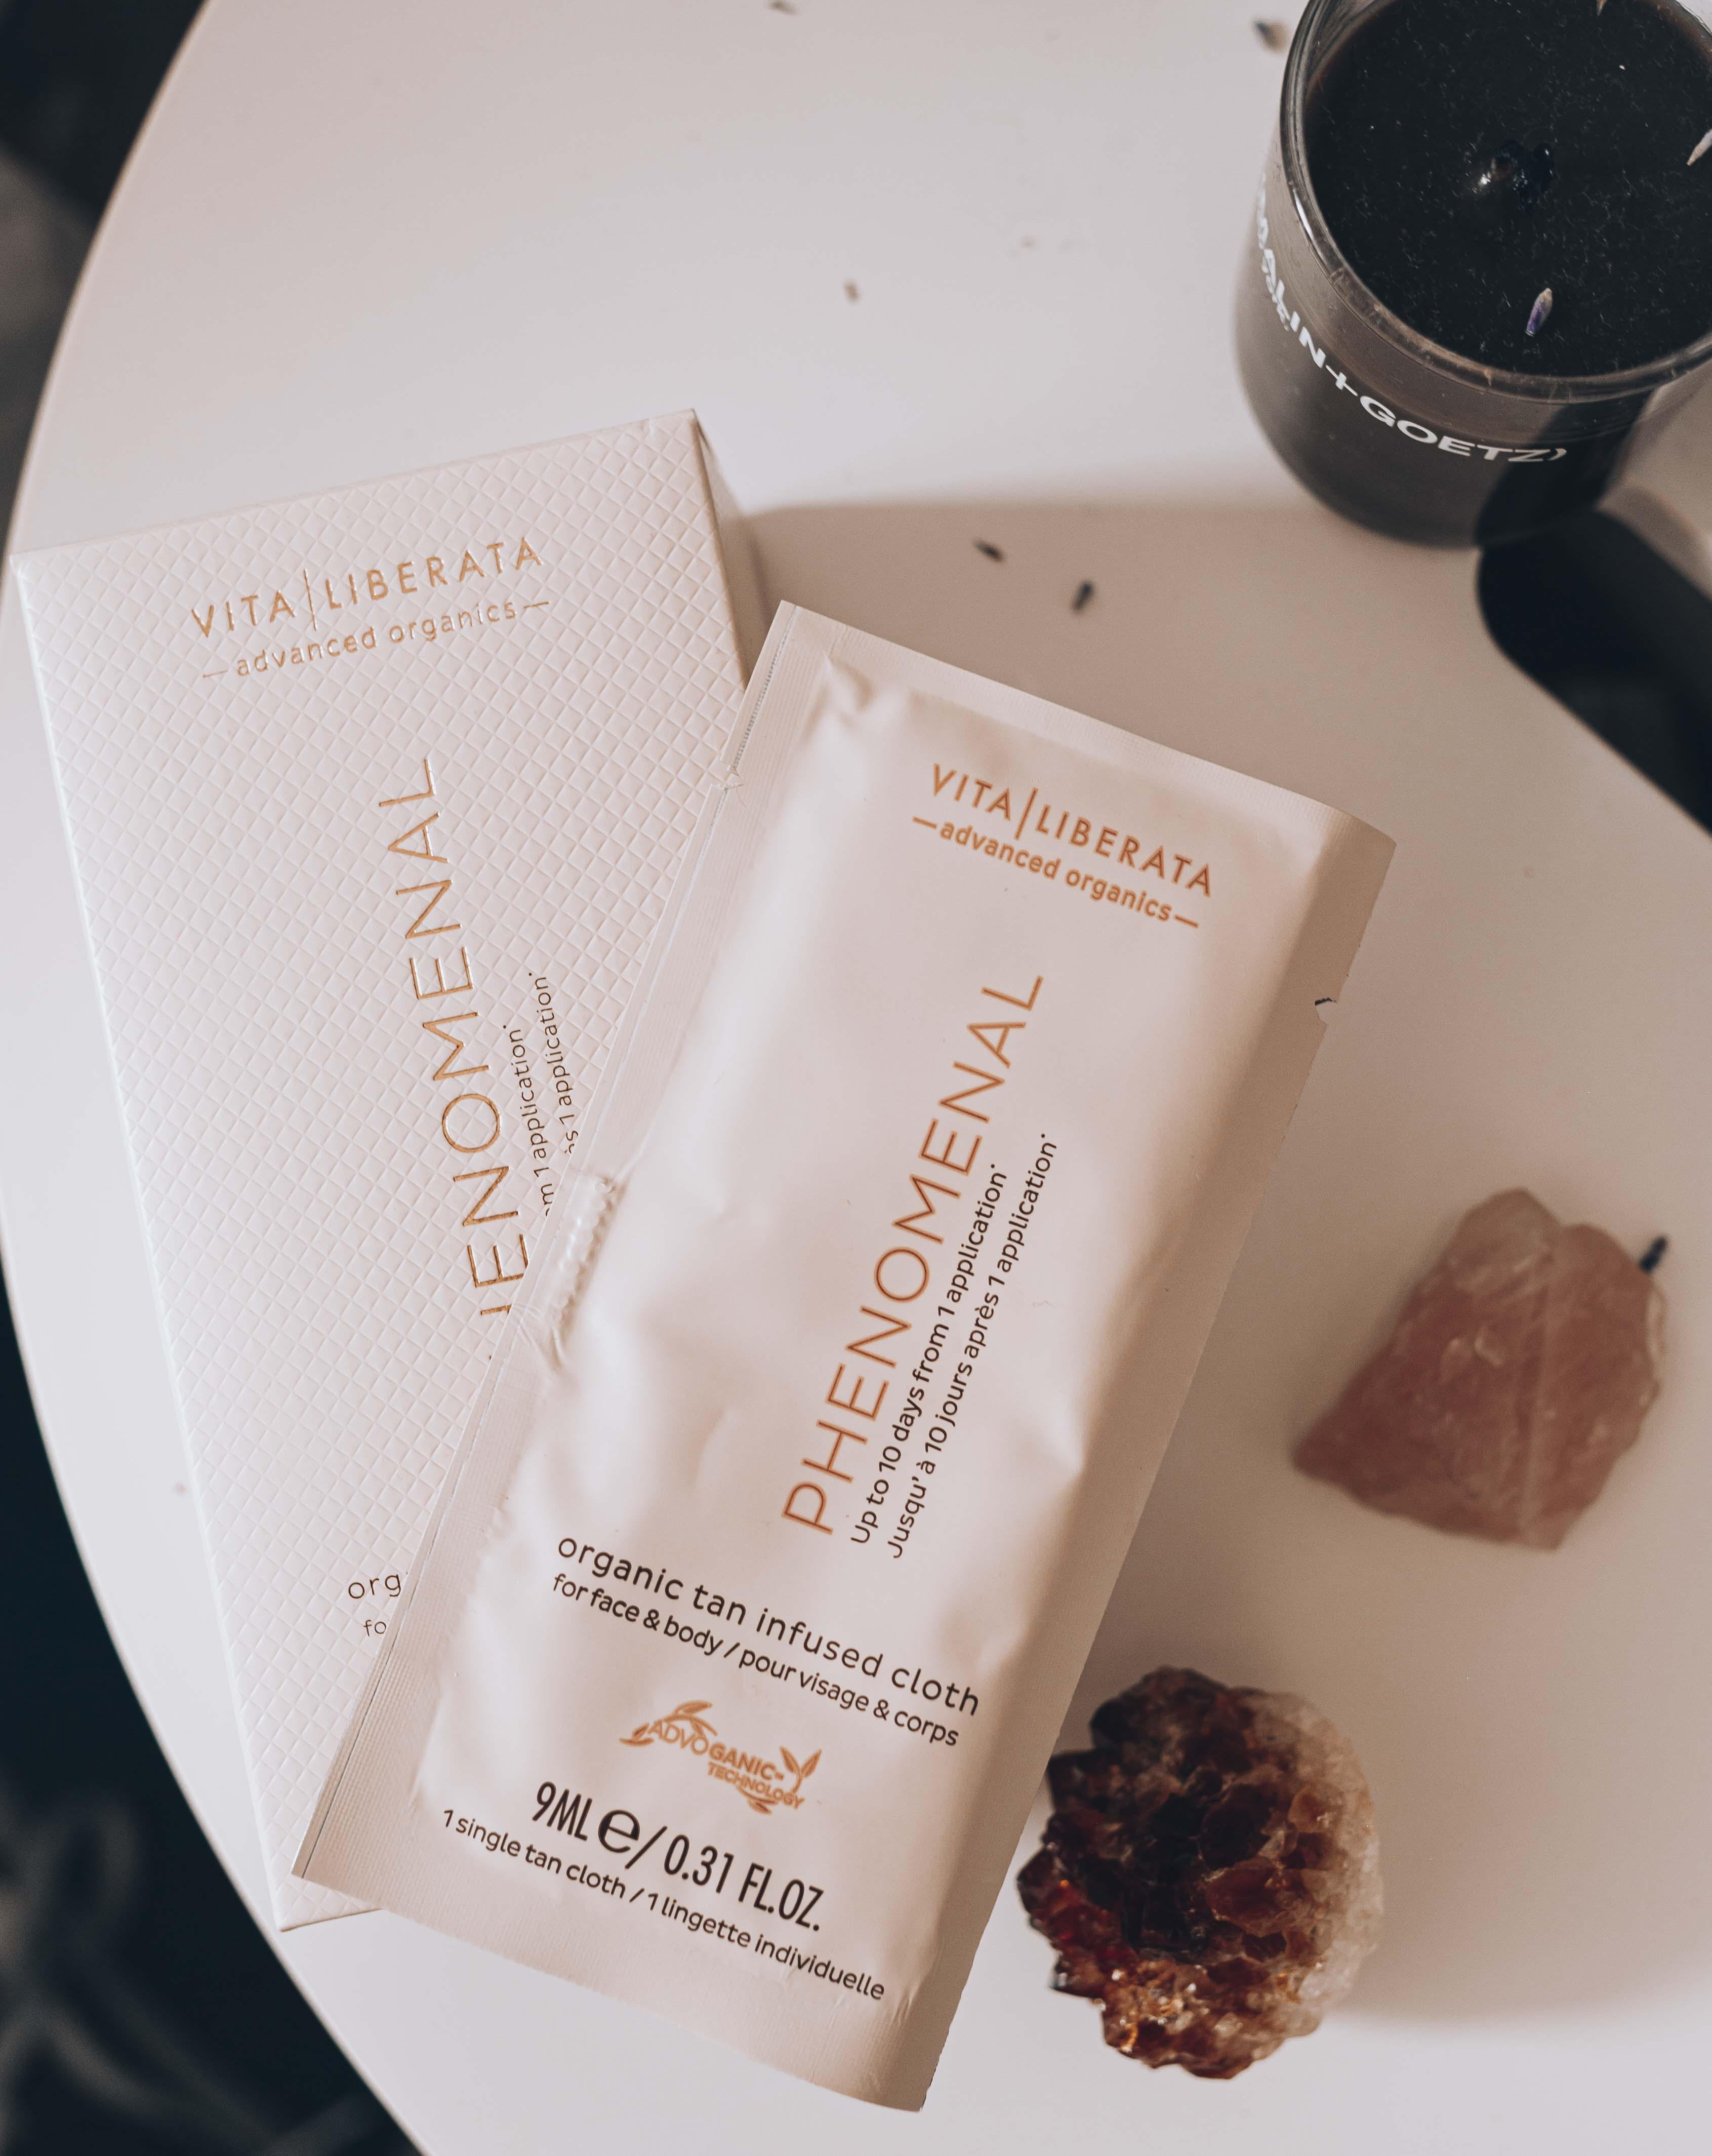 Vita Liberata Tan Infused Cloths